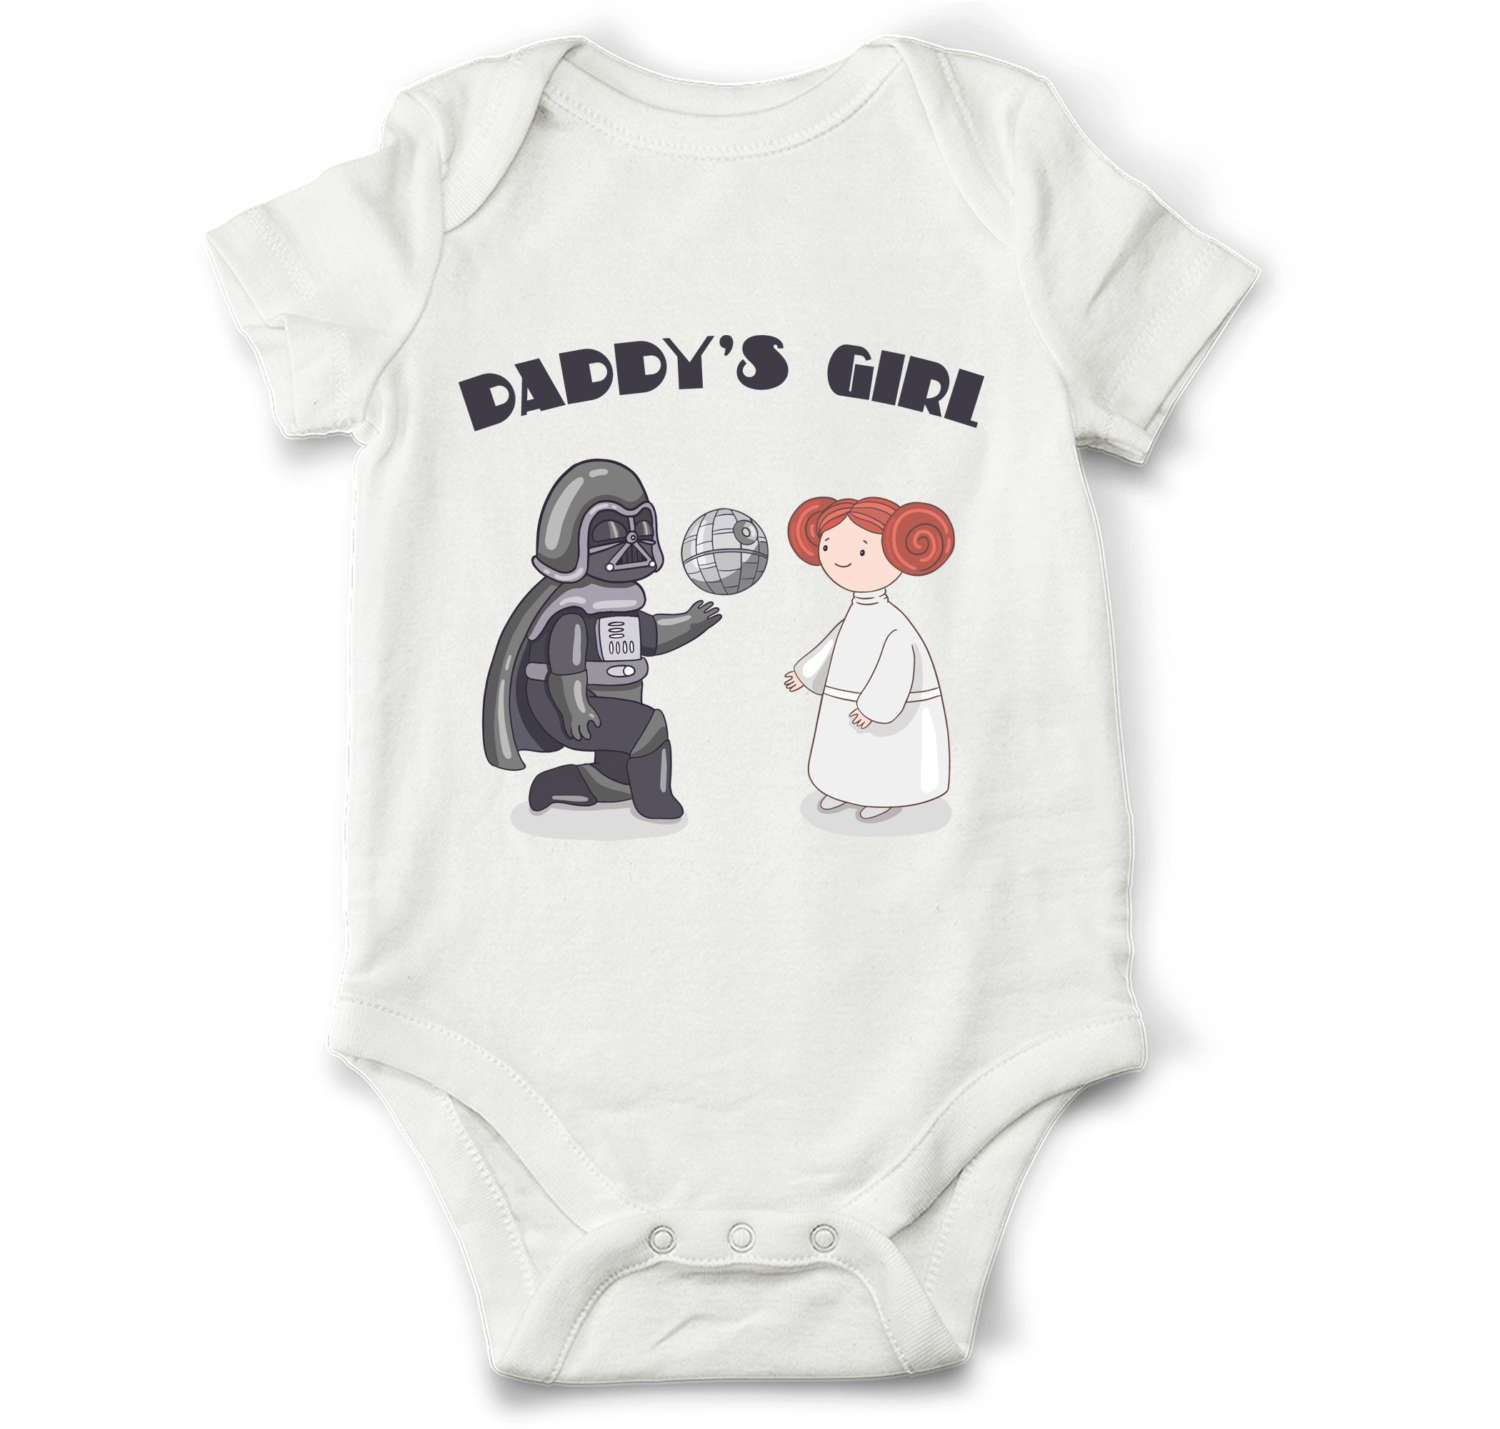 star wars baby girl onesie, daddy's girl star wars shirt, princess